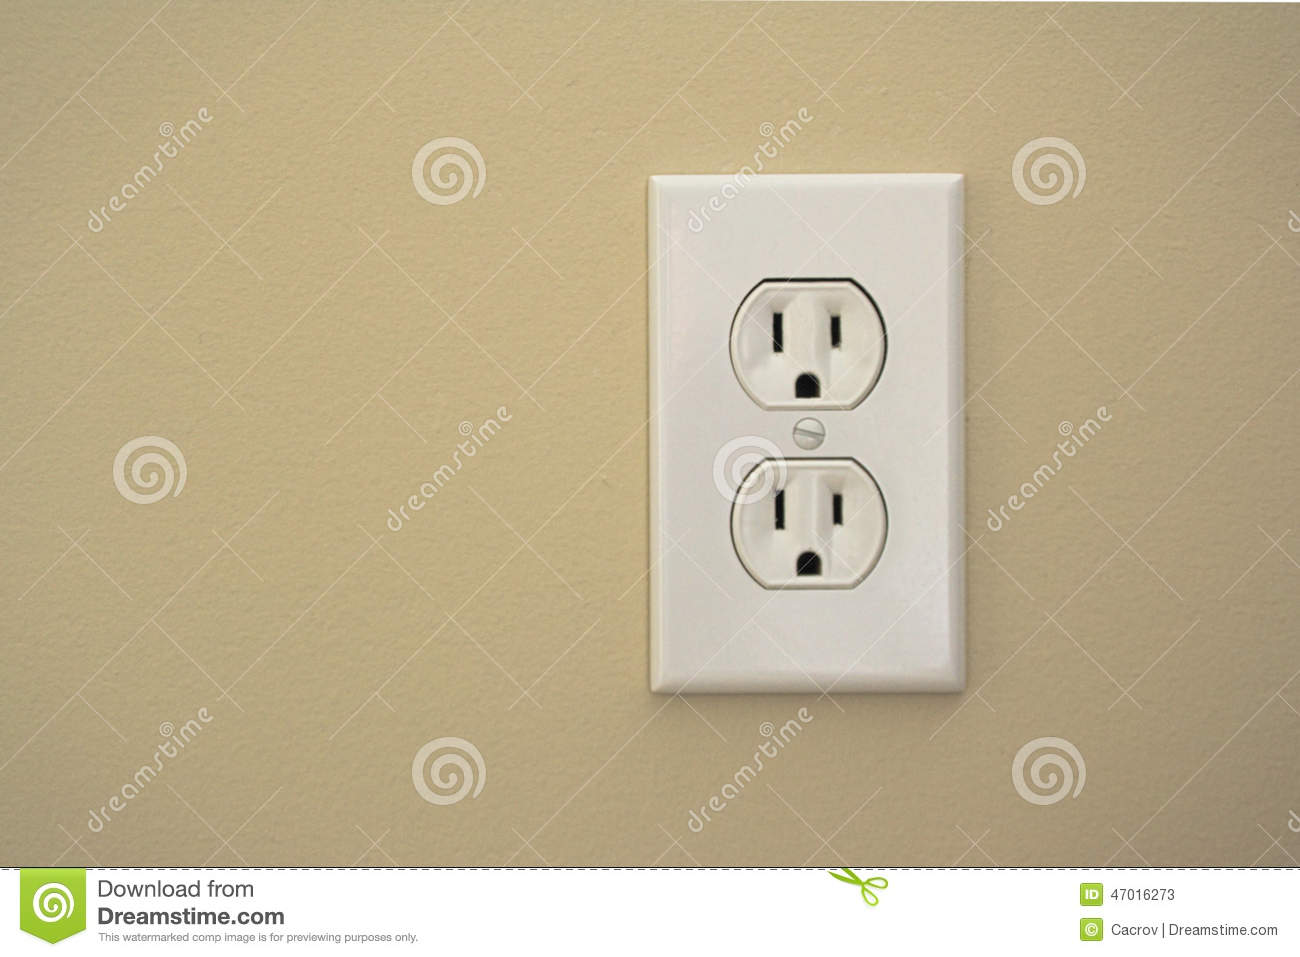 Electric Plug Connector (outlet) On A Beige Wall Stock Image - Image ...